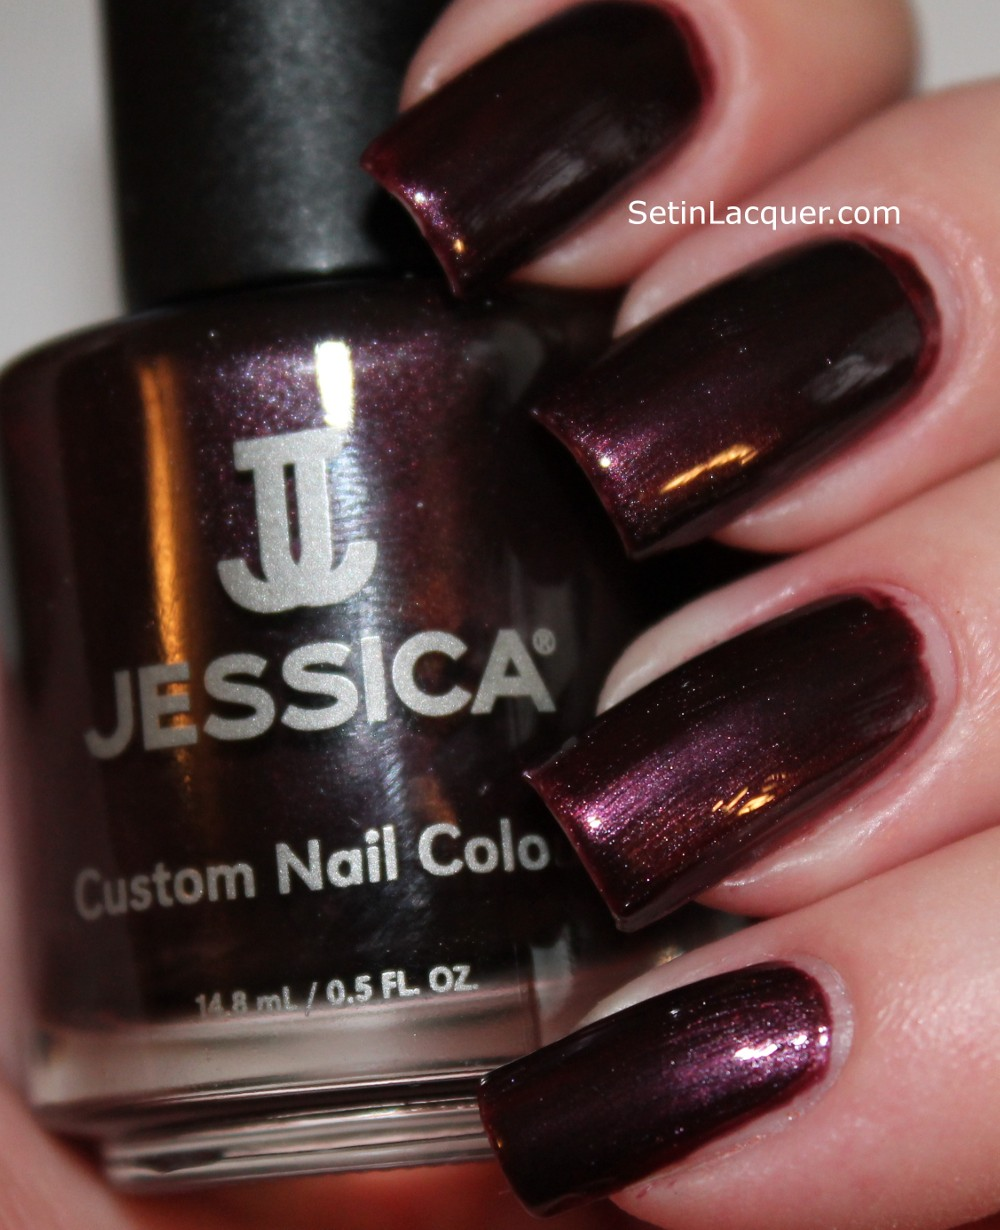 Jessica nail polish spam and swatches - Set in Lacquer